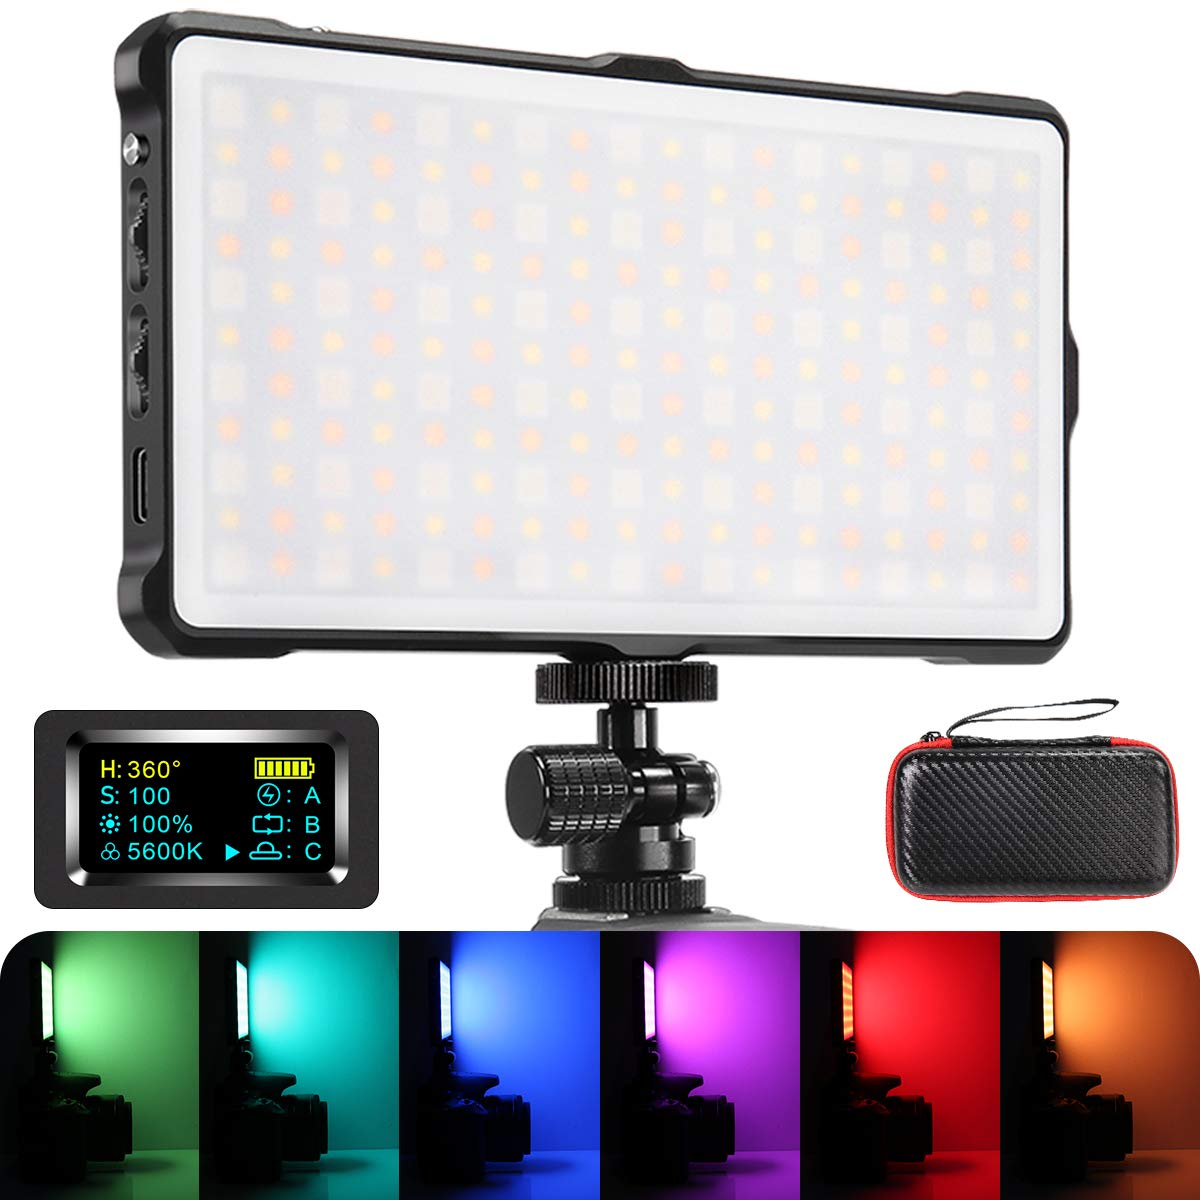 RGB Camera/Camcorder Video Light, Pixel LED Video Light Built-in 4040mAh Battery 360° Full Color 9 Lighting Effect, 3200-5600K CRI≥97 Pocket Size Light with Aluminum Alloy Shell by PIXEL